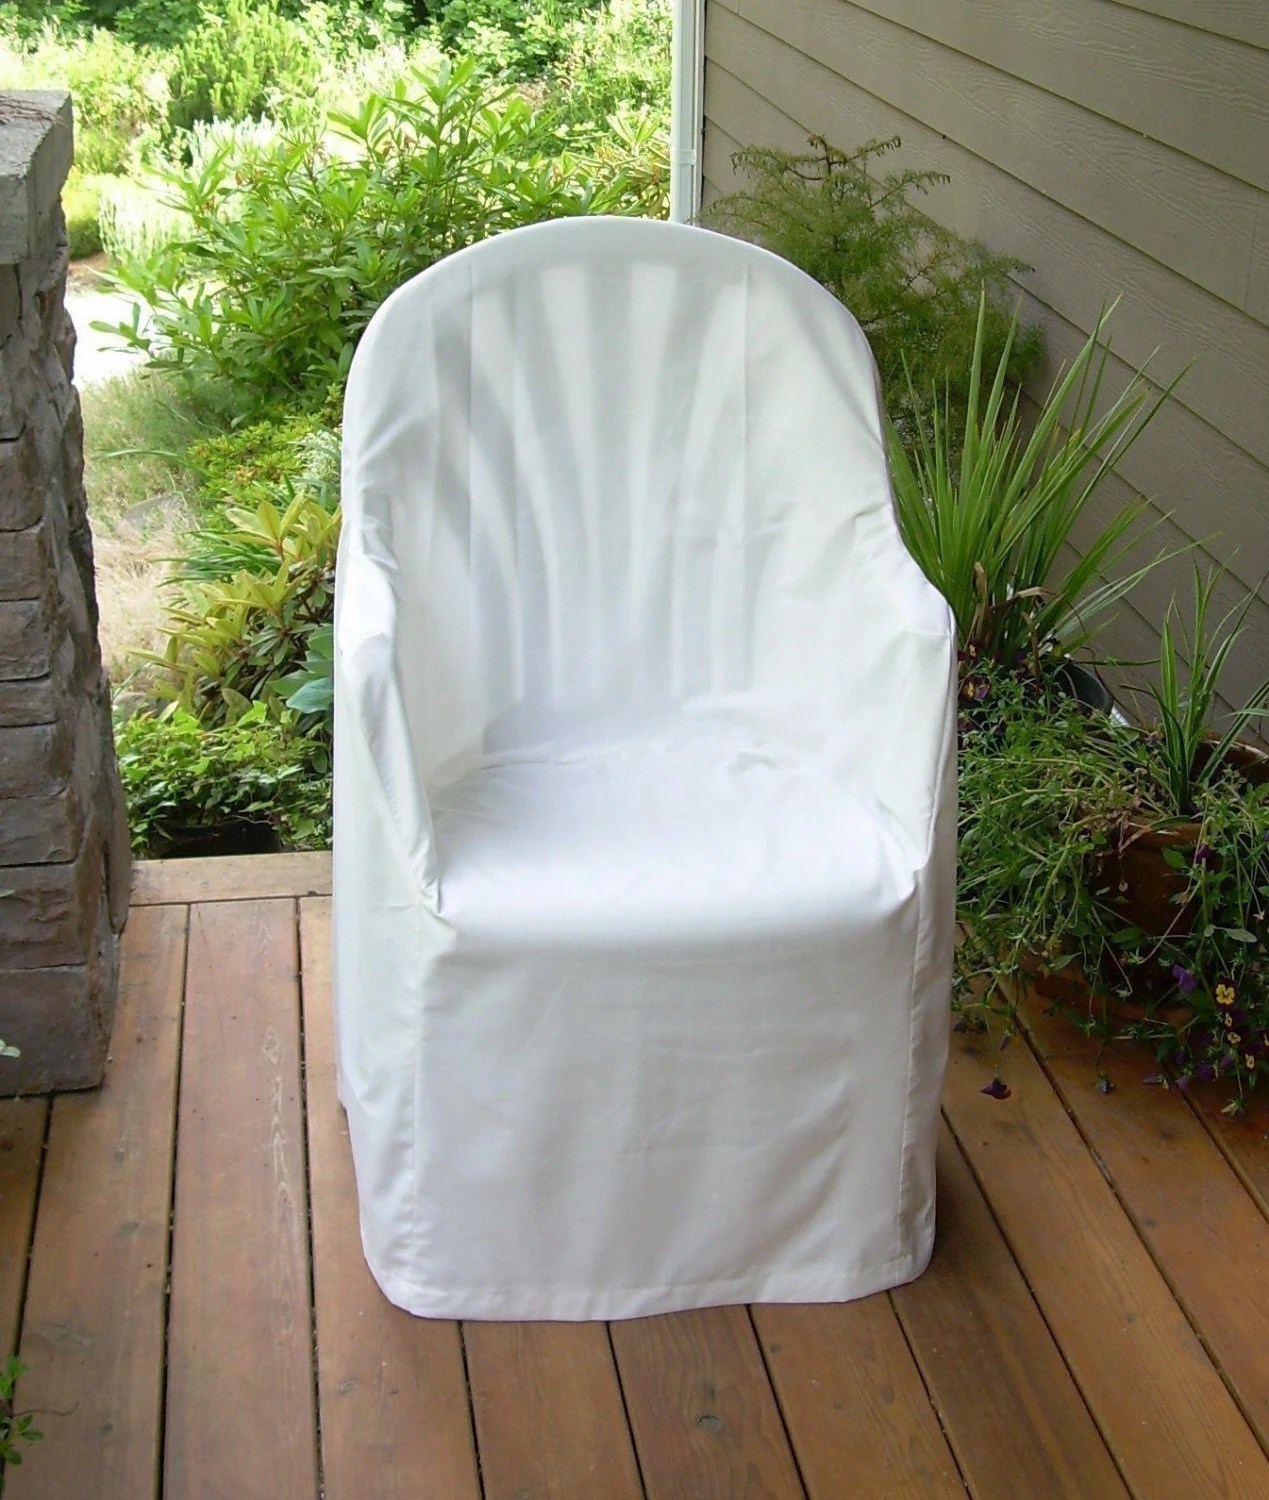 Slipcover Pattern Outdoor Resin Chair LowBack Old Style